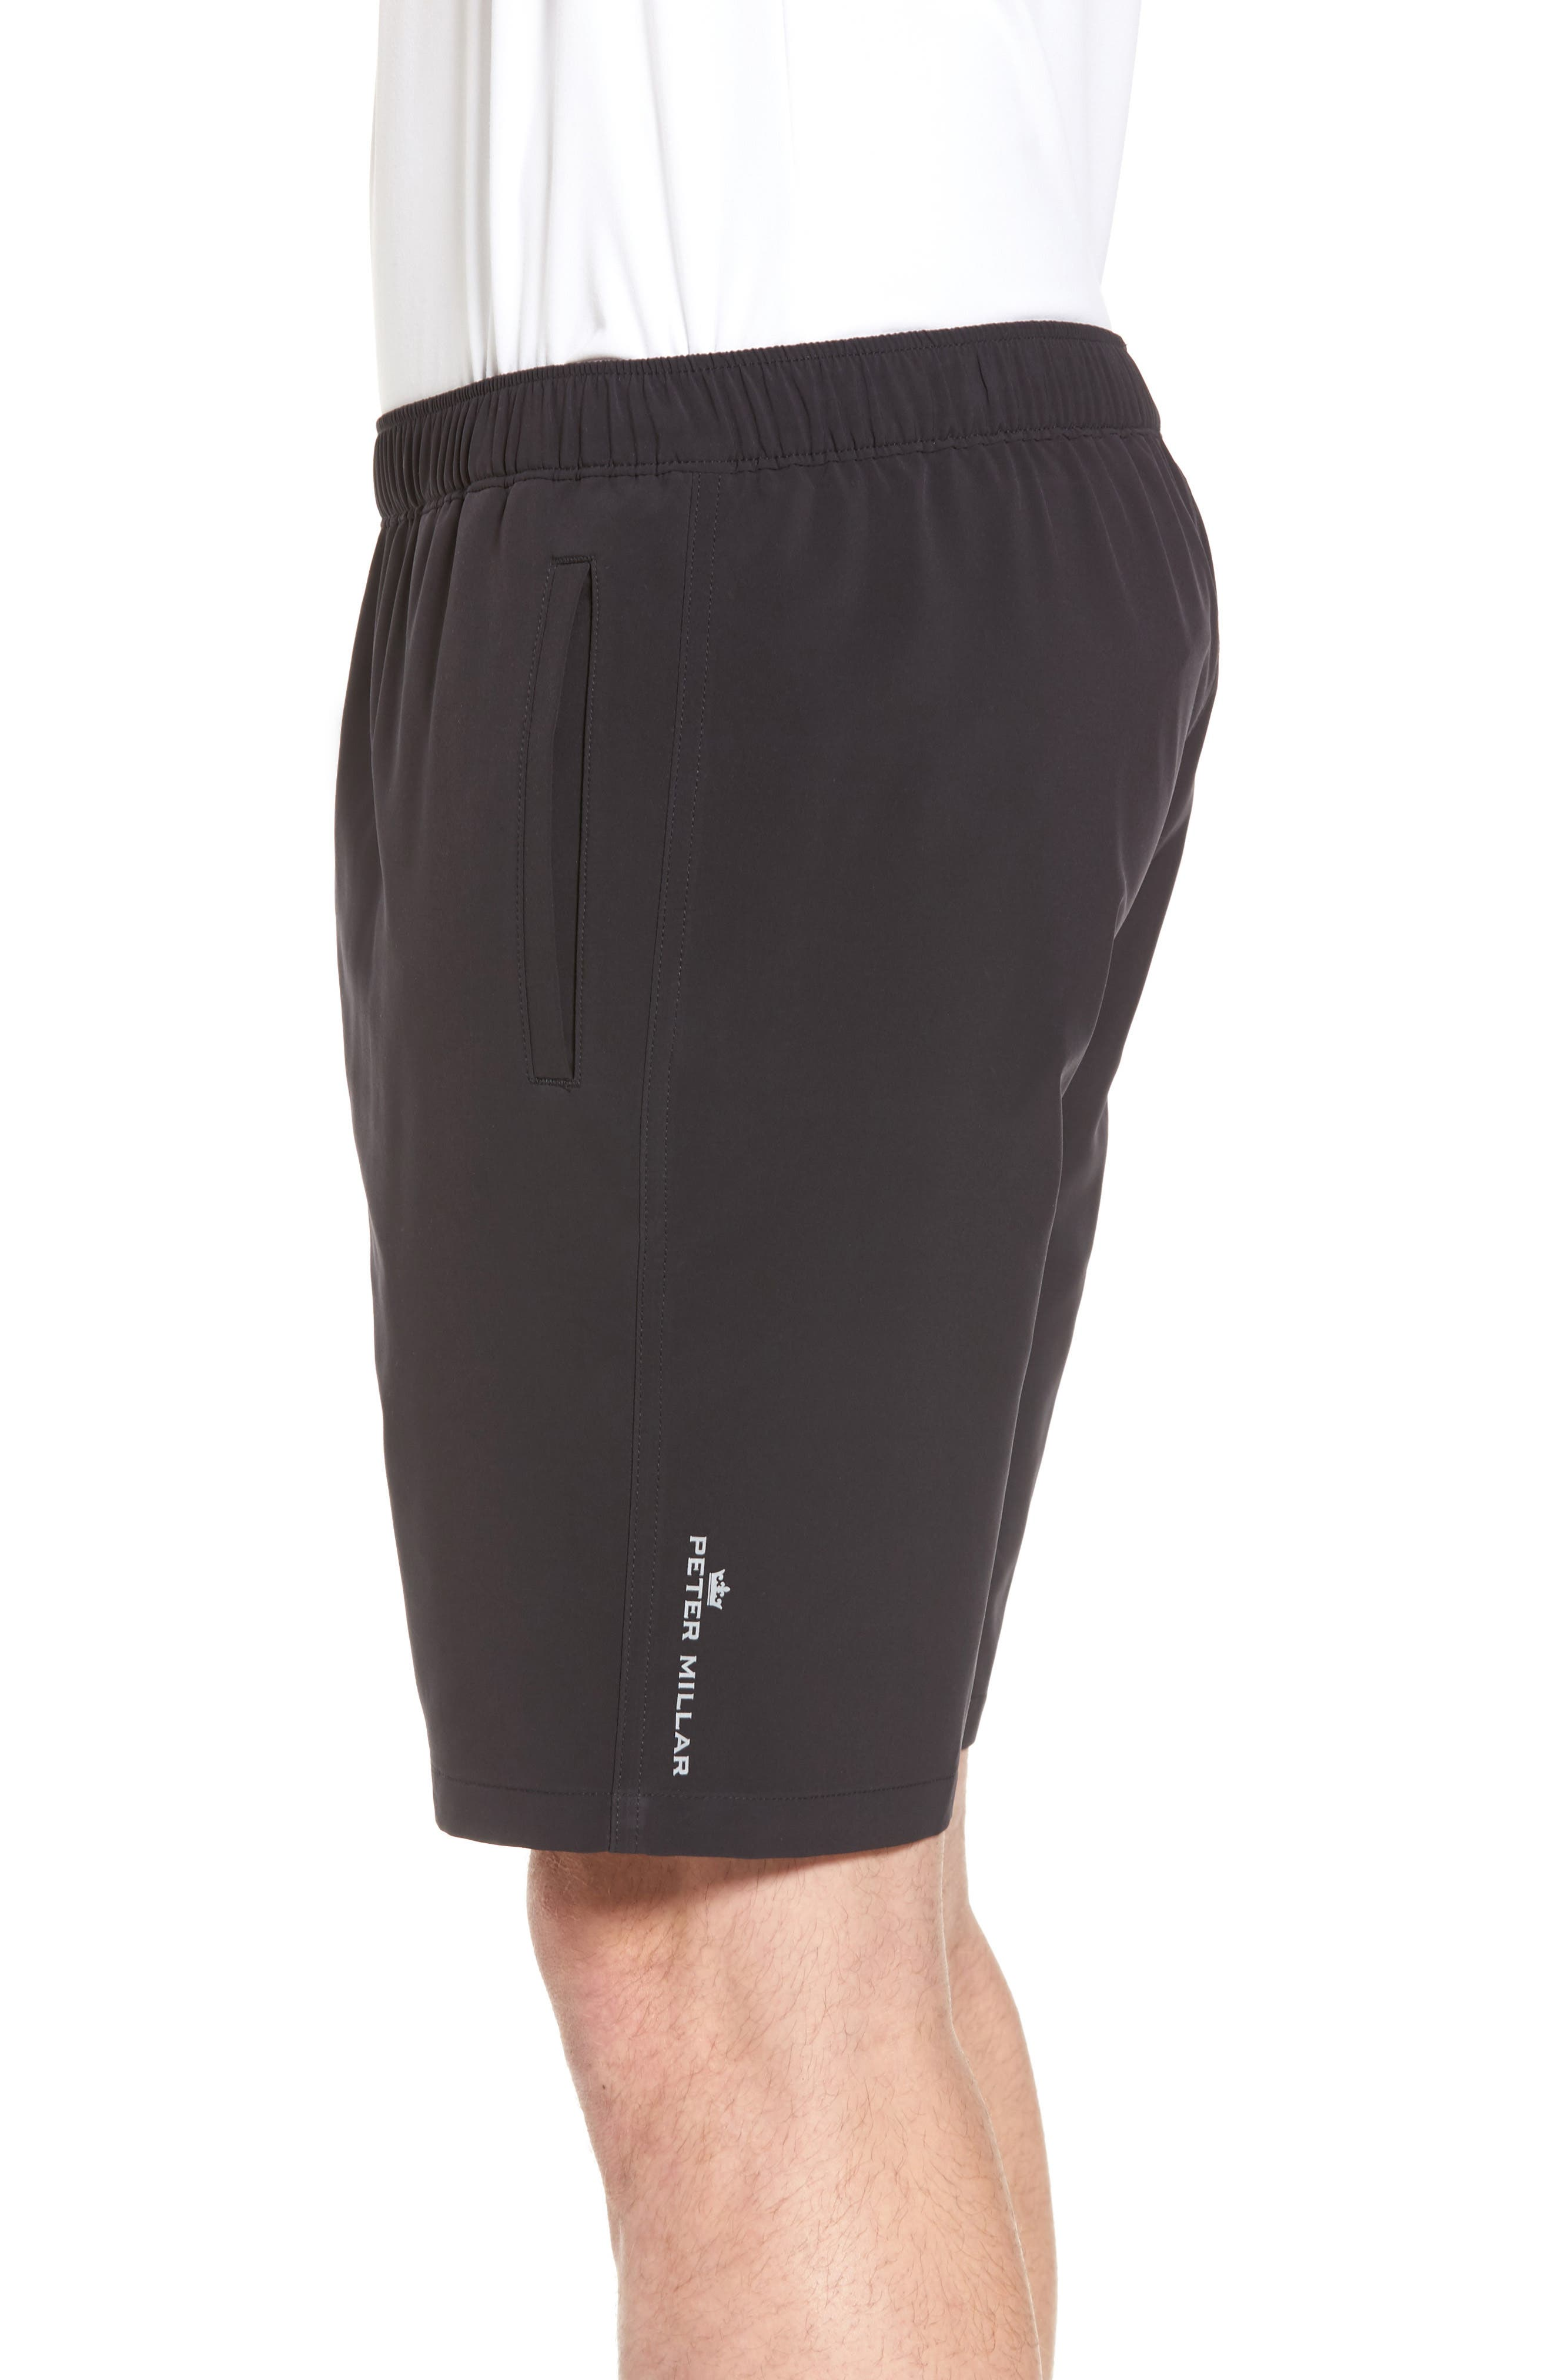 Oslo Sport Shorts,                             Alternate thumbnail 3, color,                             001